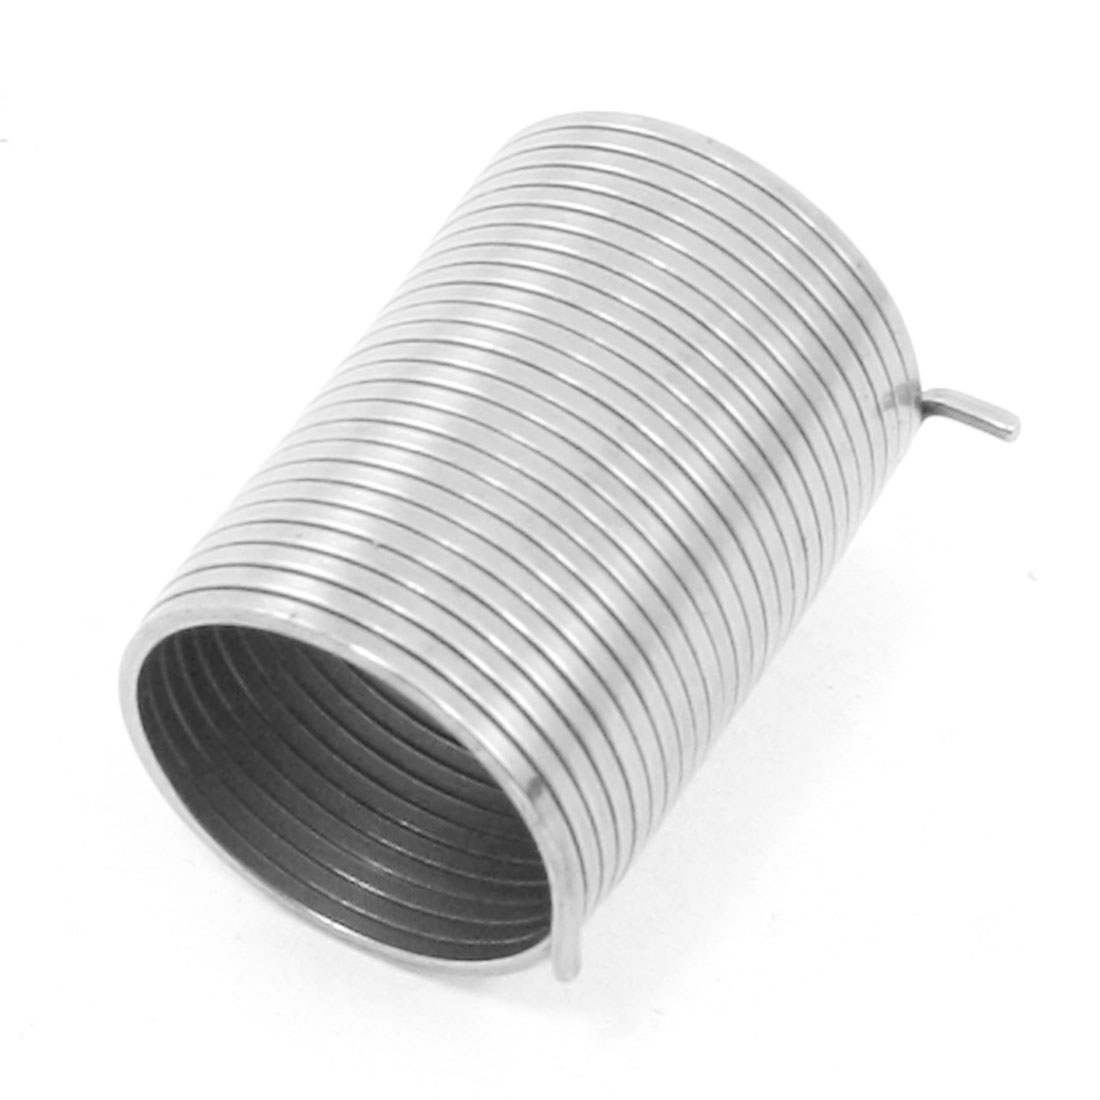 Washing Machine Spiral Shaped Spring Clutch 24mm x 27mm x 39mm